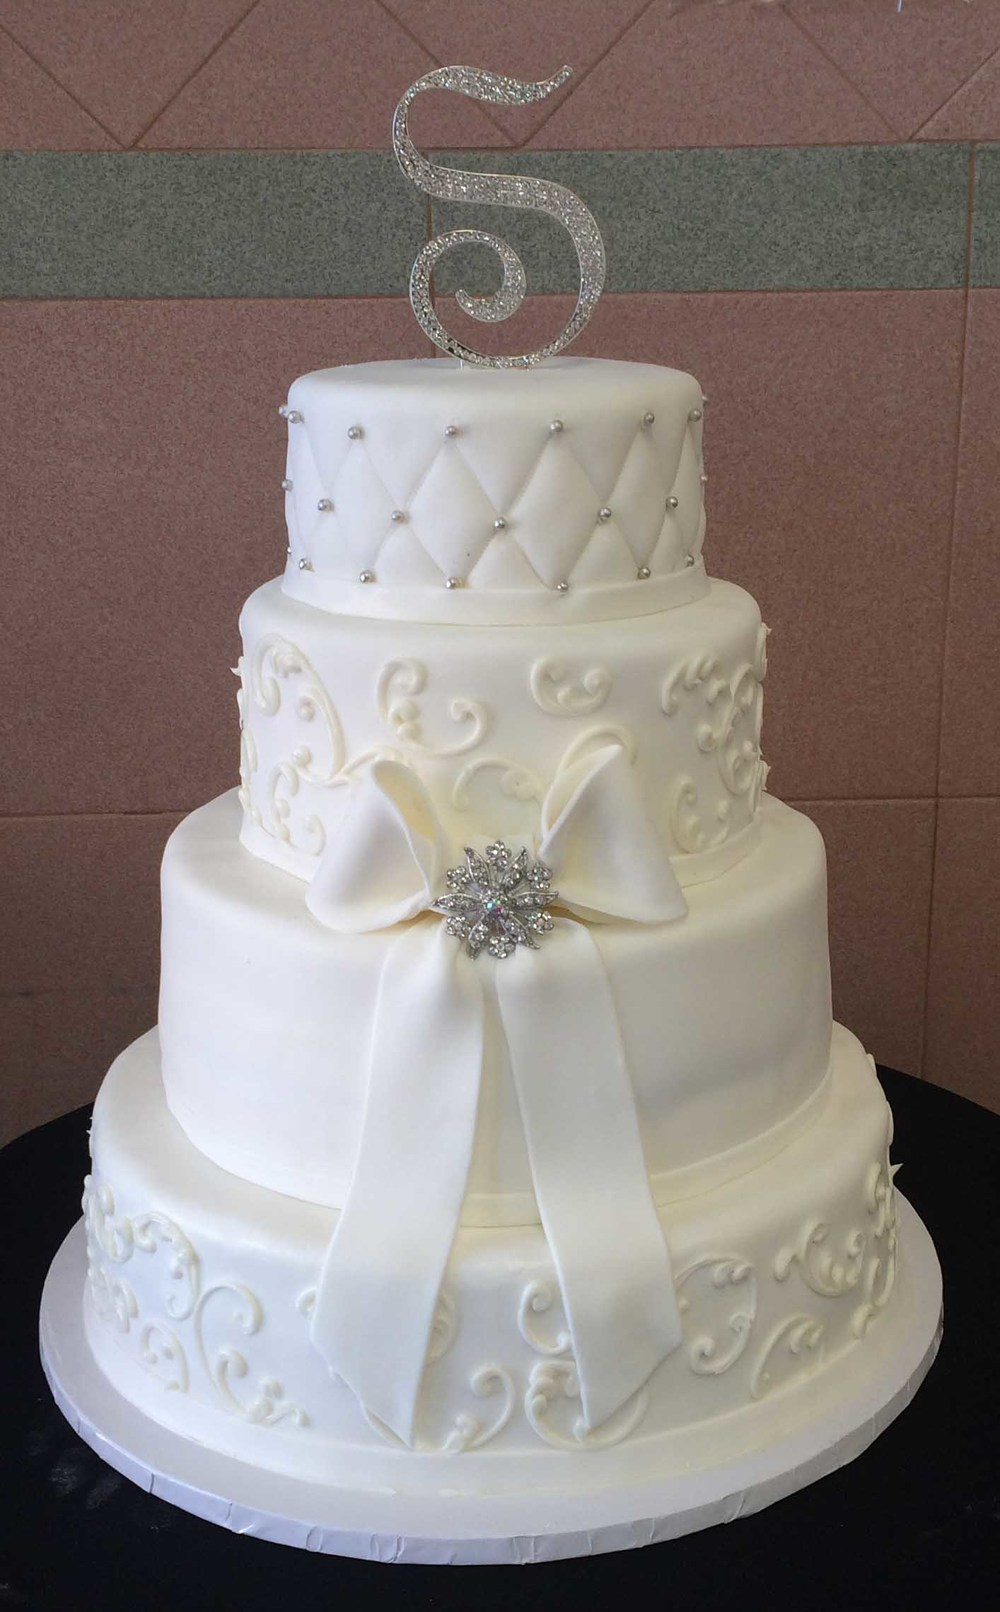 White Rolled Fondant. White Rolled Fondant Bands. Scrolls. White Bow & Brooch. Quilted with Silver. Crystal Monogram.jpg